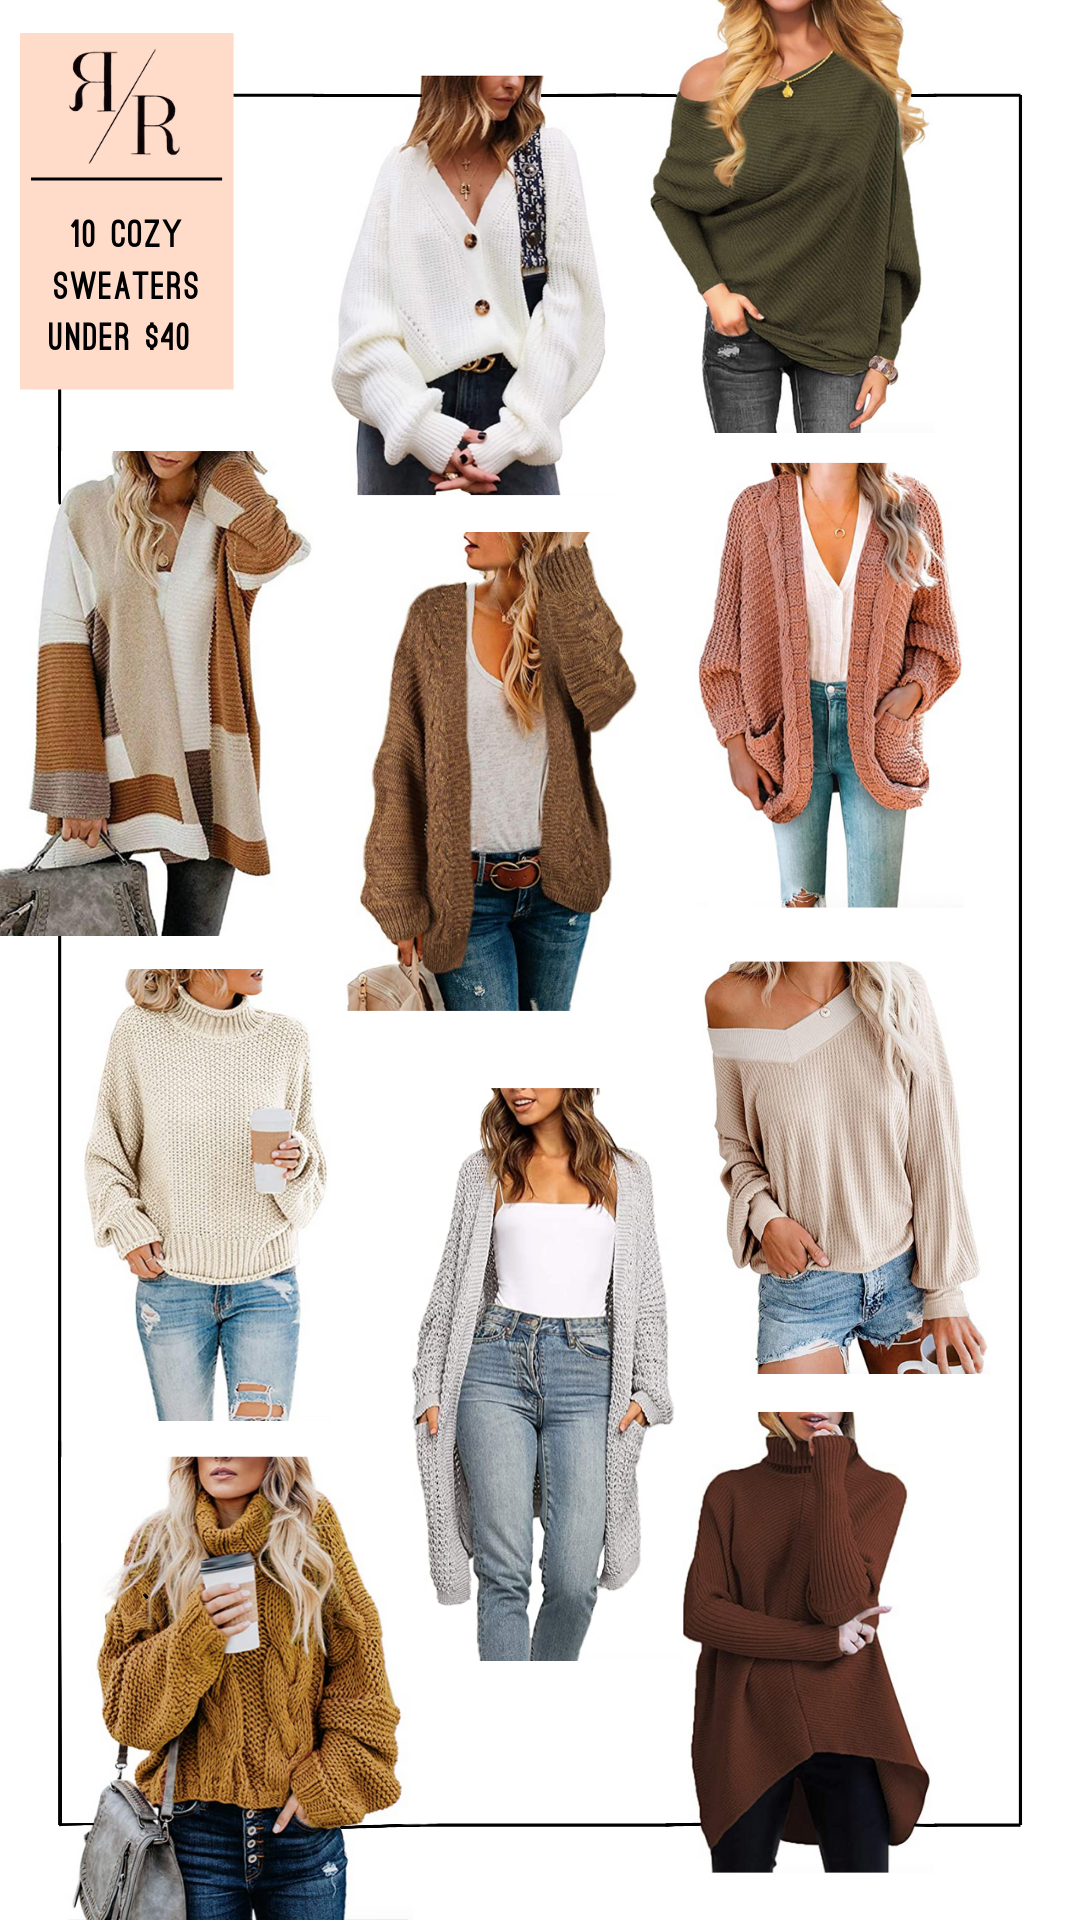 Ruthie Ridley Blog 10 Cozy Sweaters Under $40